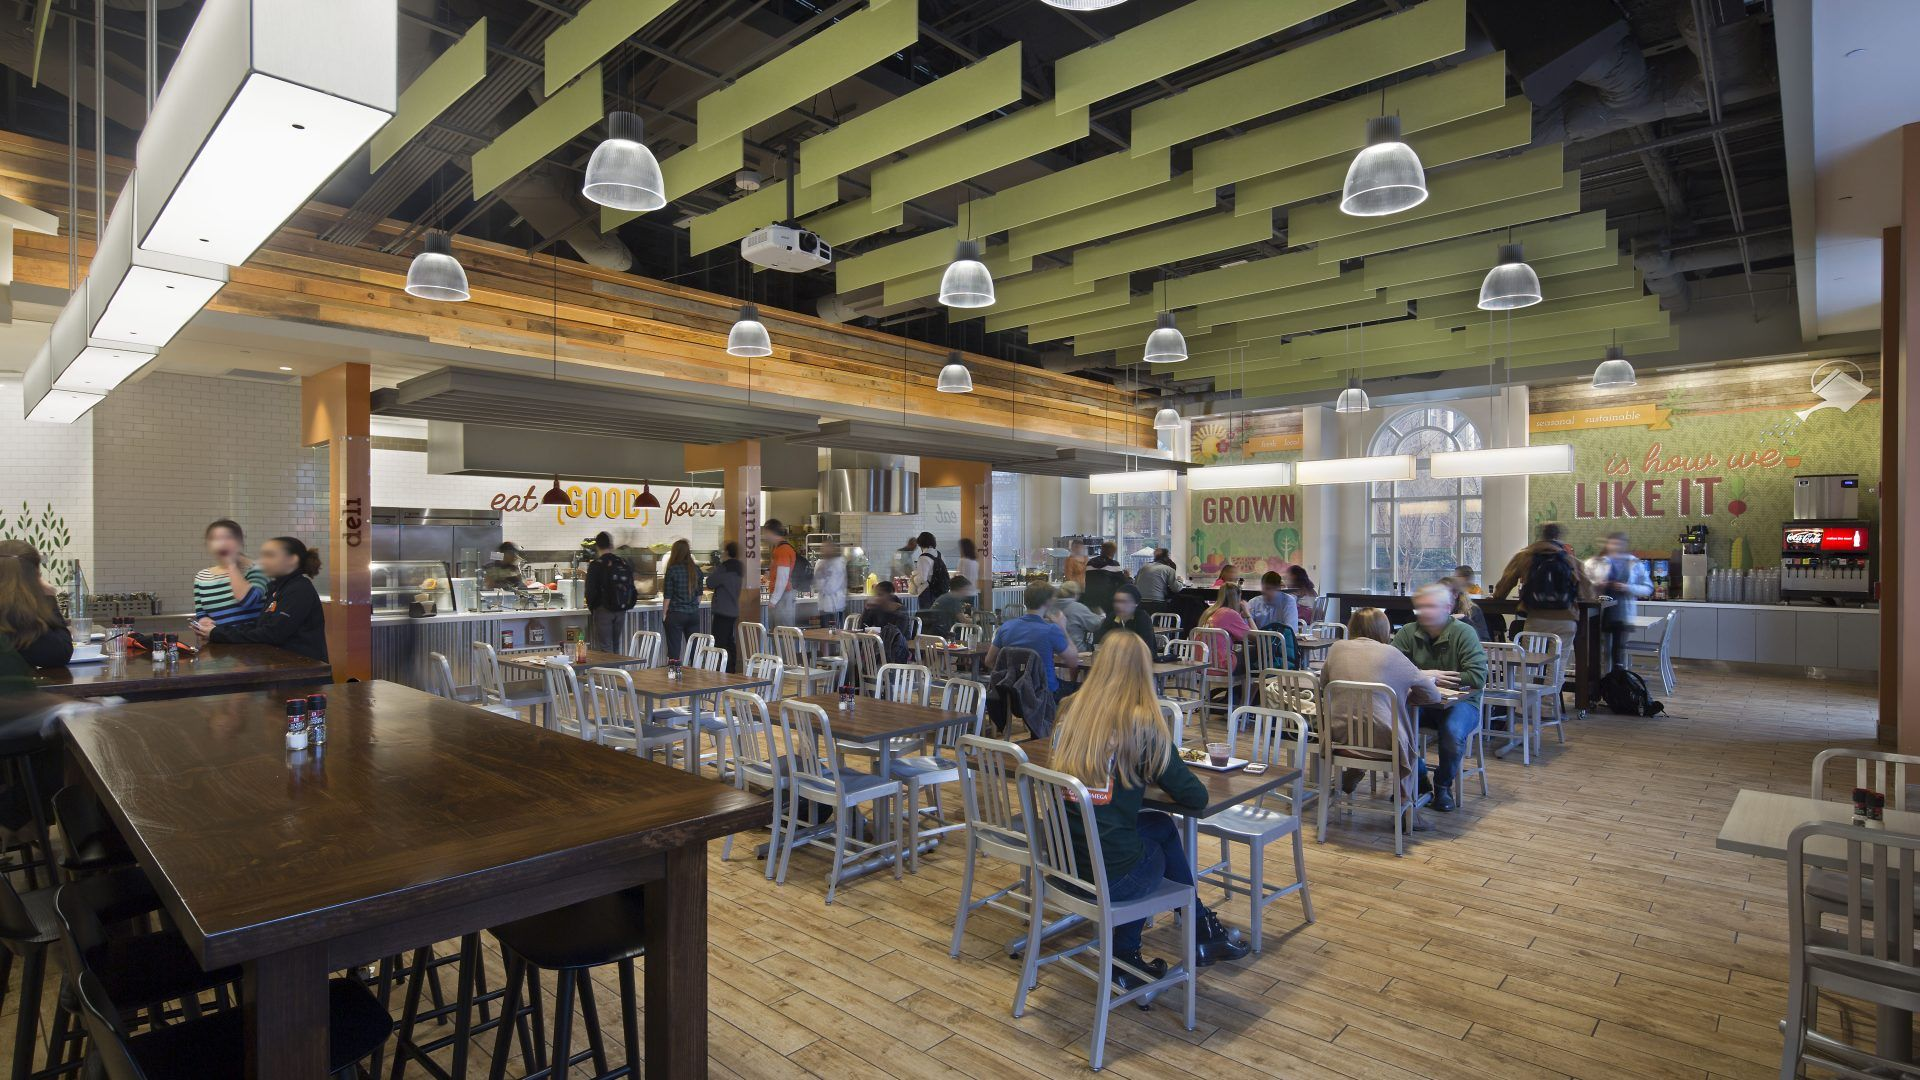 Farmers market dining commons collins cooper carusi